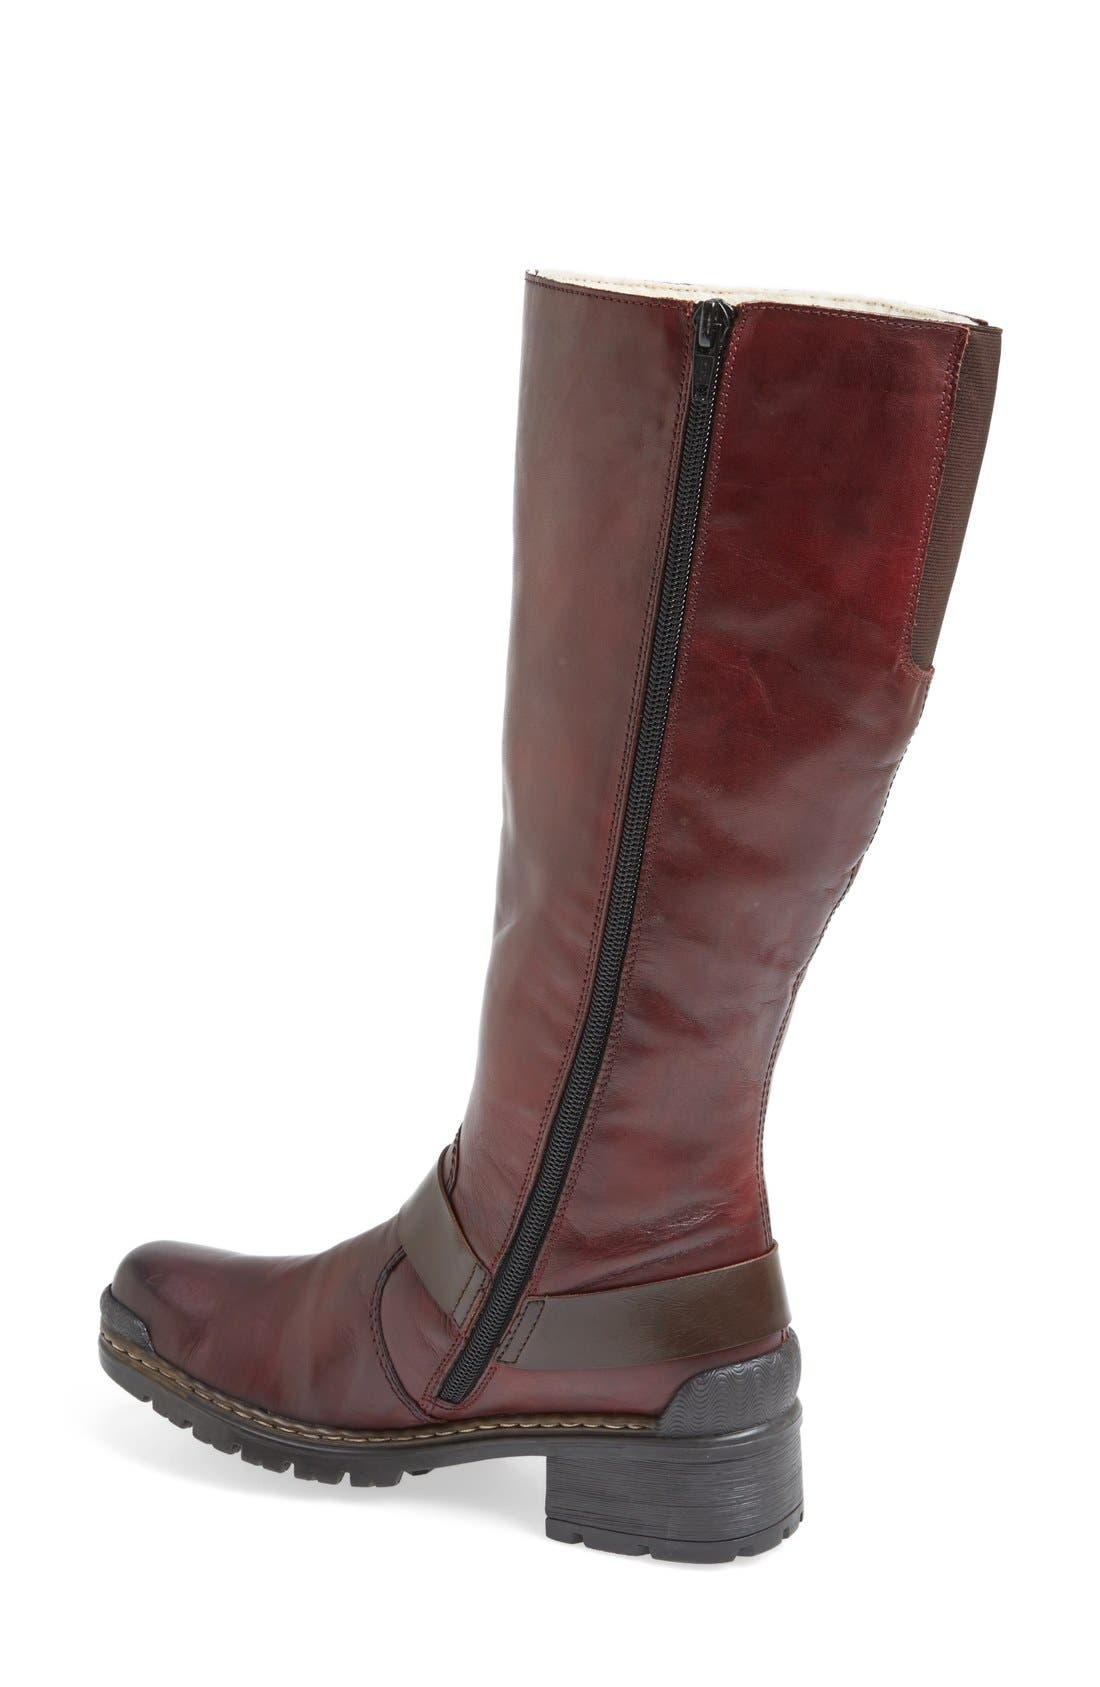 Rieker Women's 'Sybille 70' Riding Boot